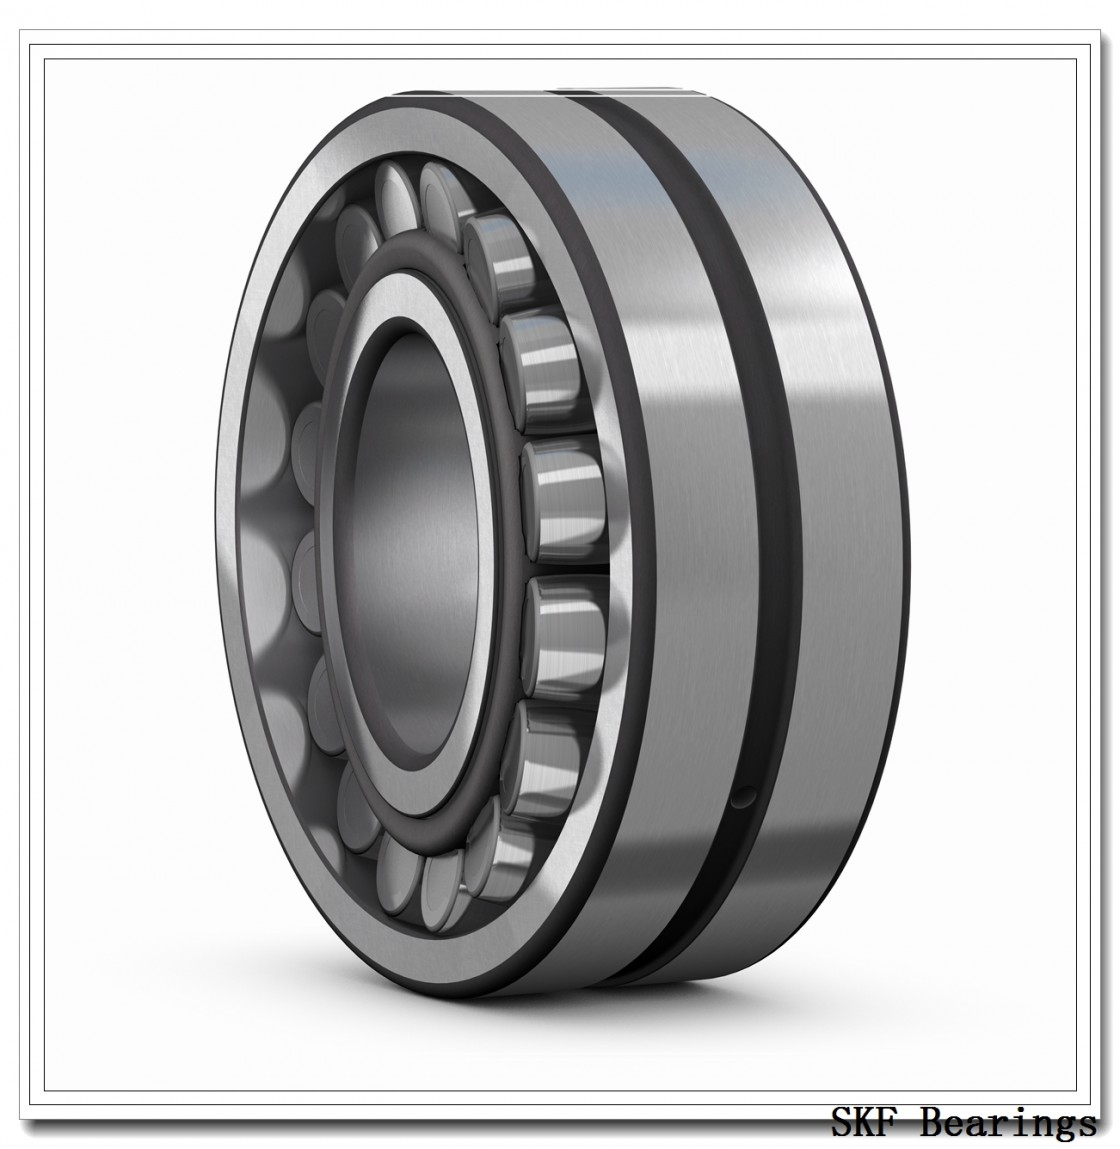 SKF PCM 121425 E plain bearings